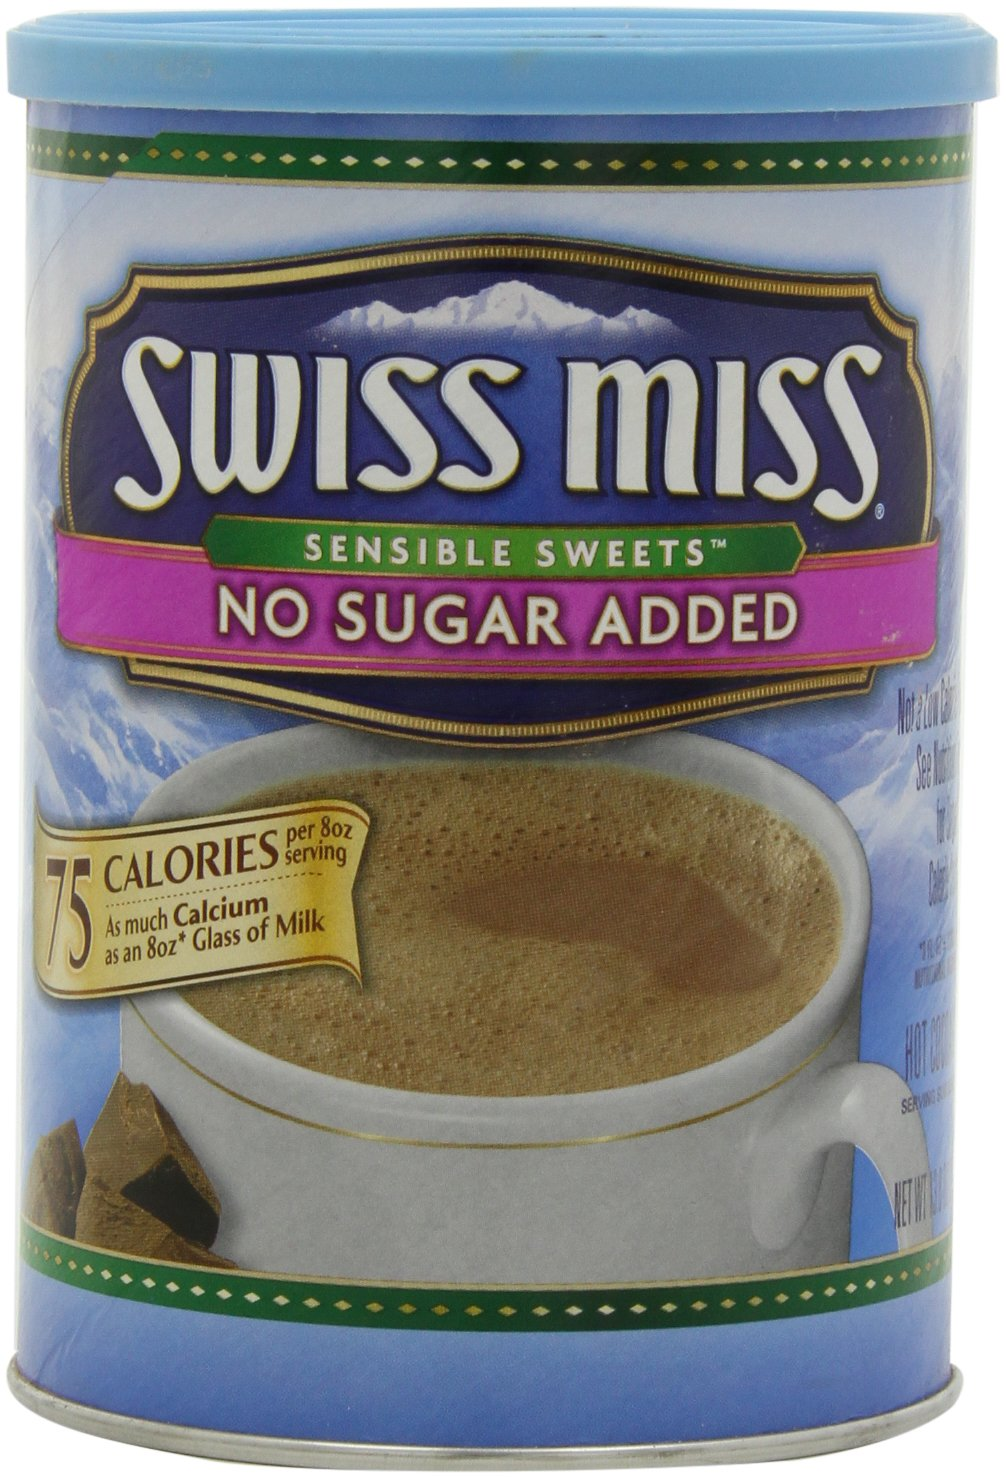 Swiss Miss Hot Cocoa Mix, Sensible Sweets, No Sugar Added, 13.8 Oz. (Pack of 6)